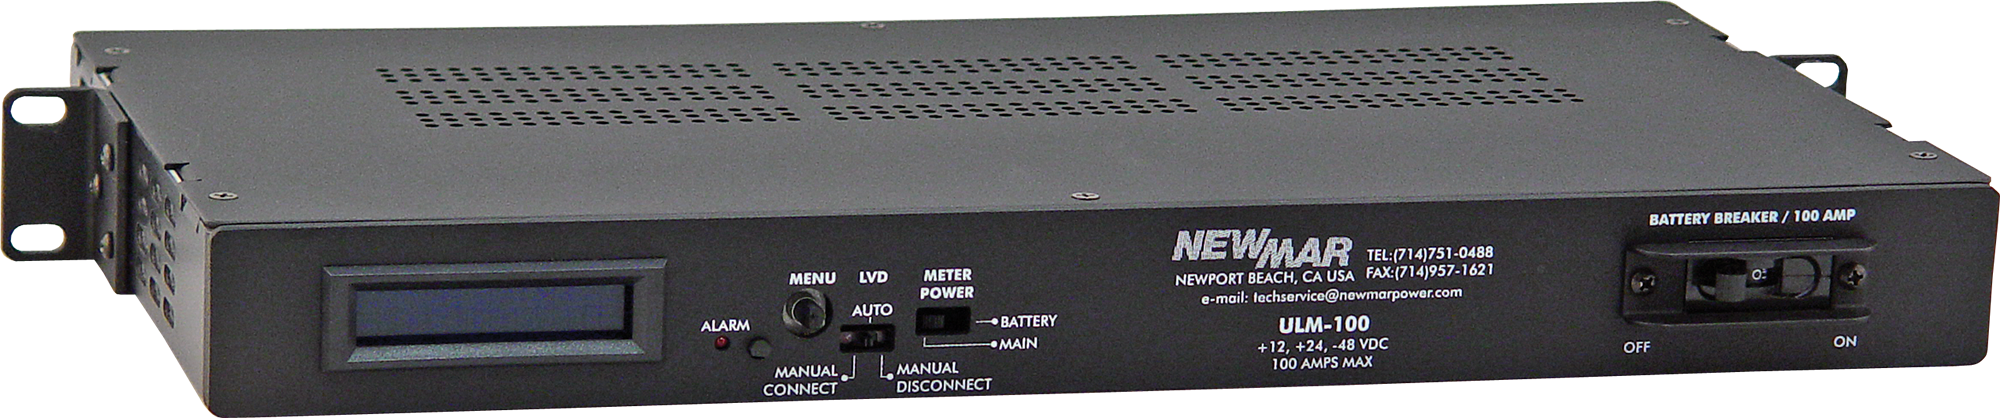 Rack Mount Low Voltage Disconnect and Monitor, model ULM-100, image by Newmar Powering the Network